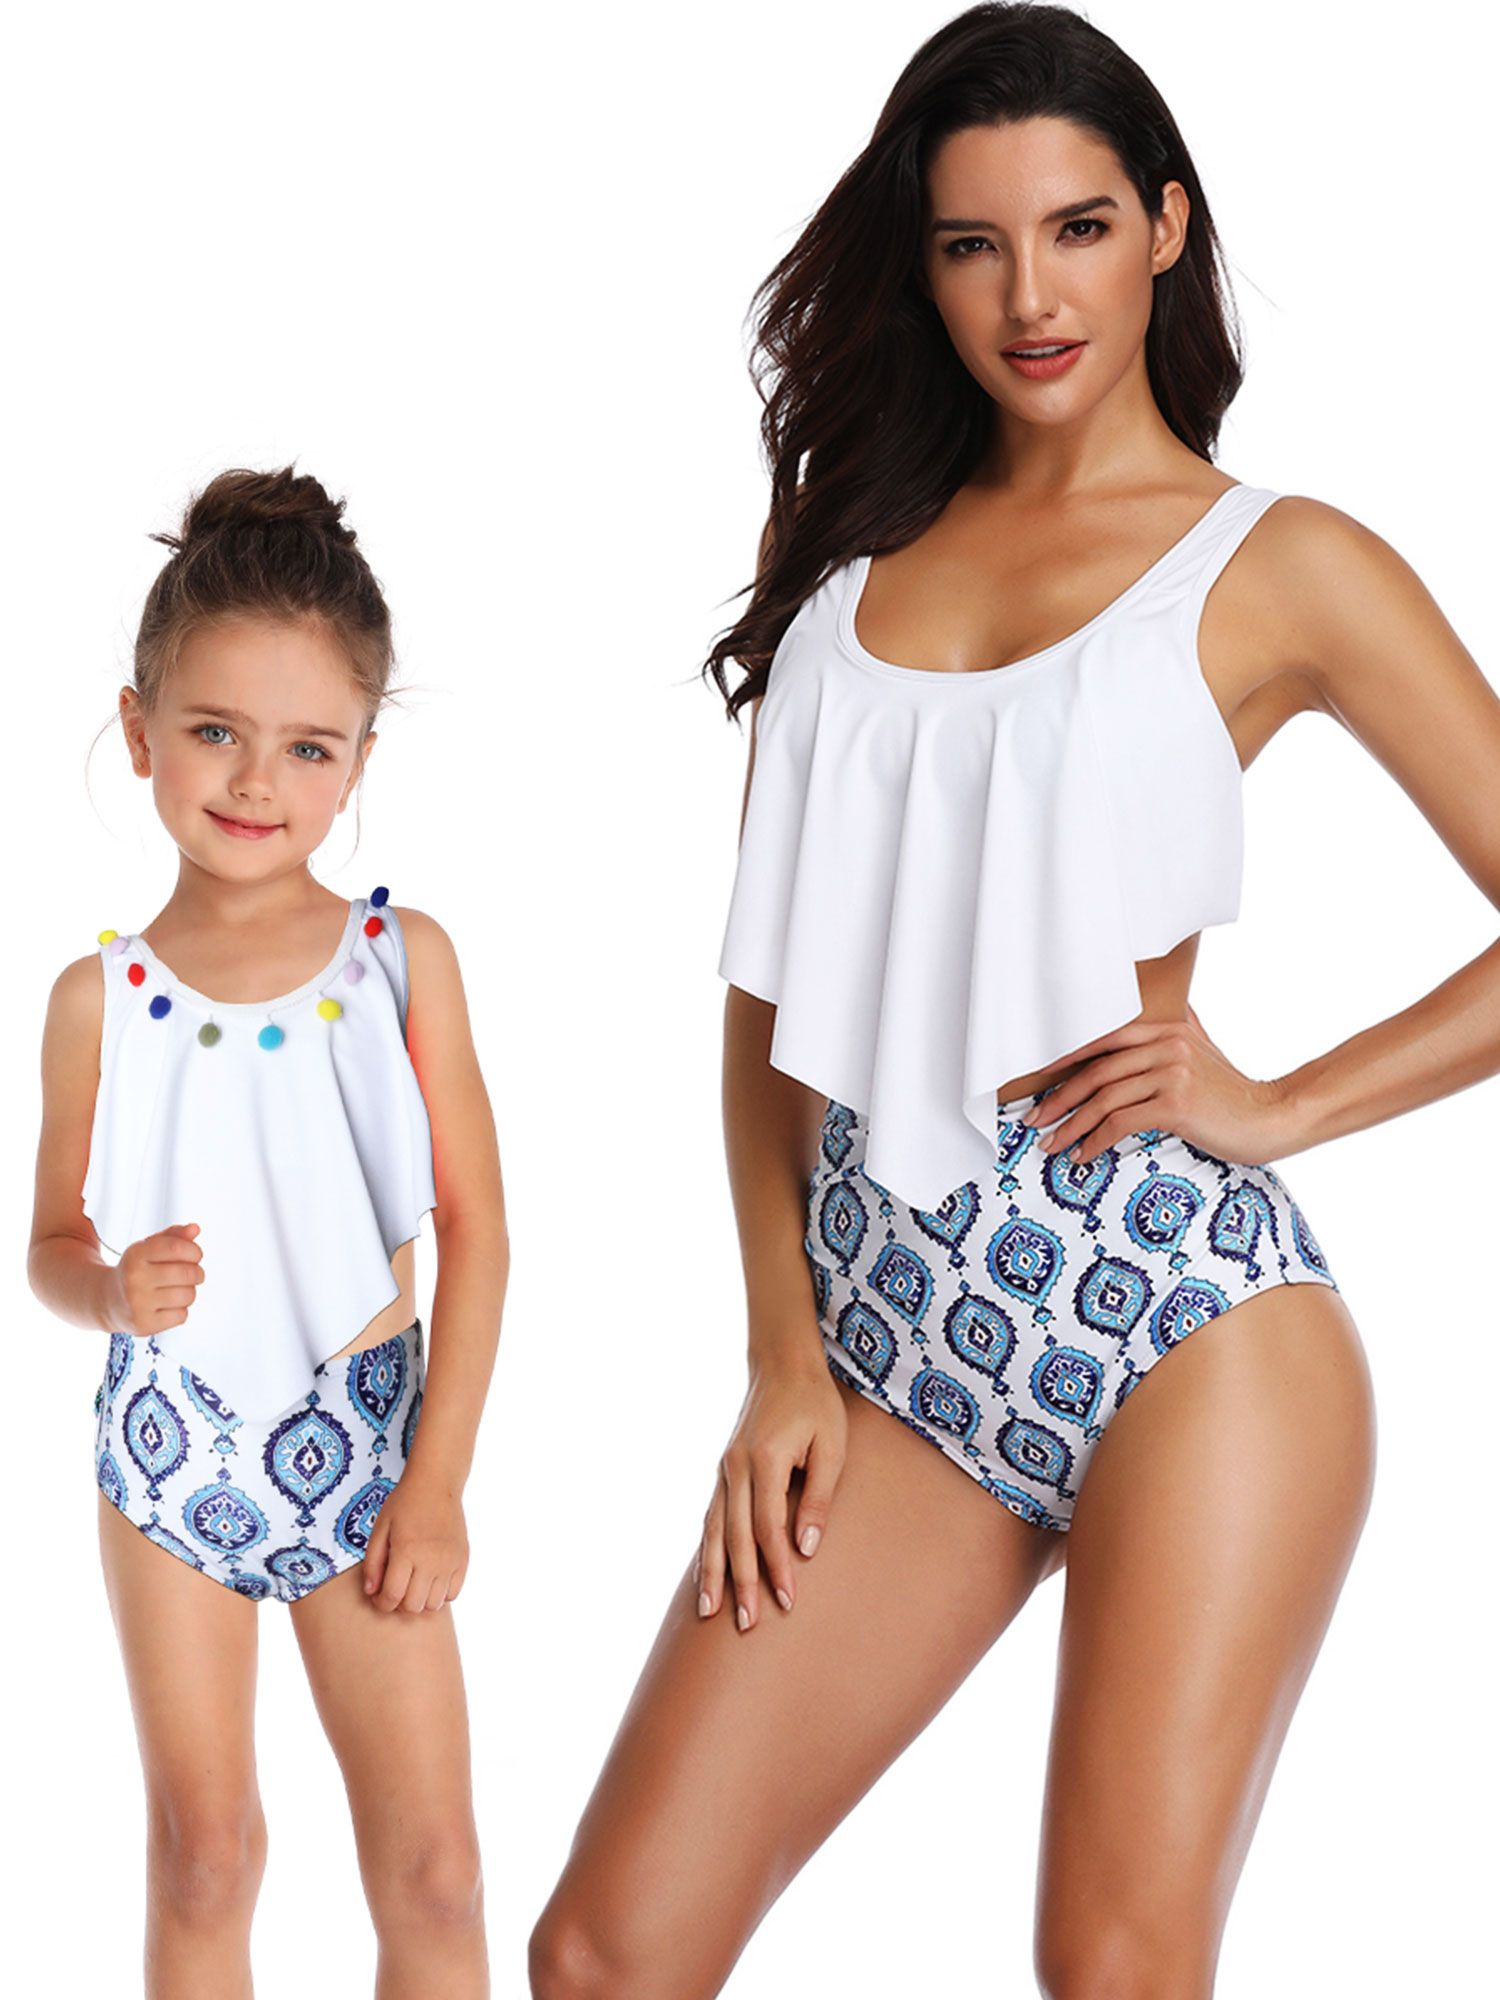 bf59685617b Mother Daughter Family Matching Swimwear Swimsuit Bathing Suit Beachwear  High Waist Bikini Women Girls Baby Kids Summer #Ad #Swimsuit, #AD, #Swimwear,  #Suit